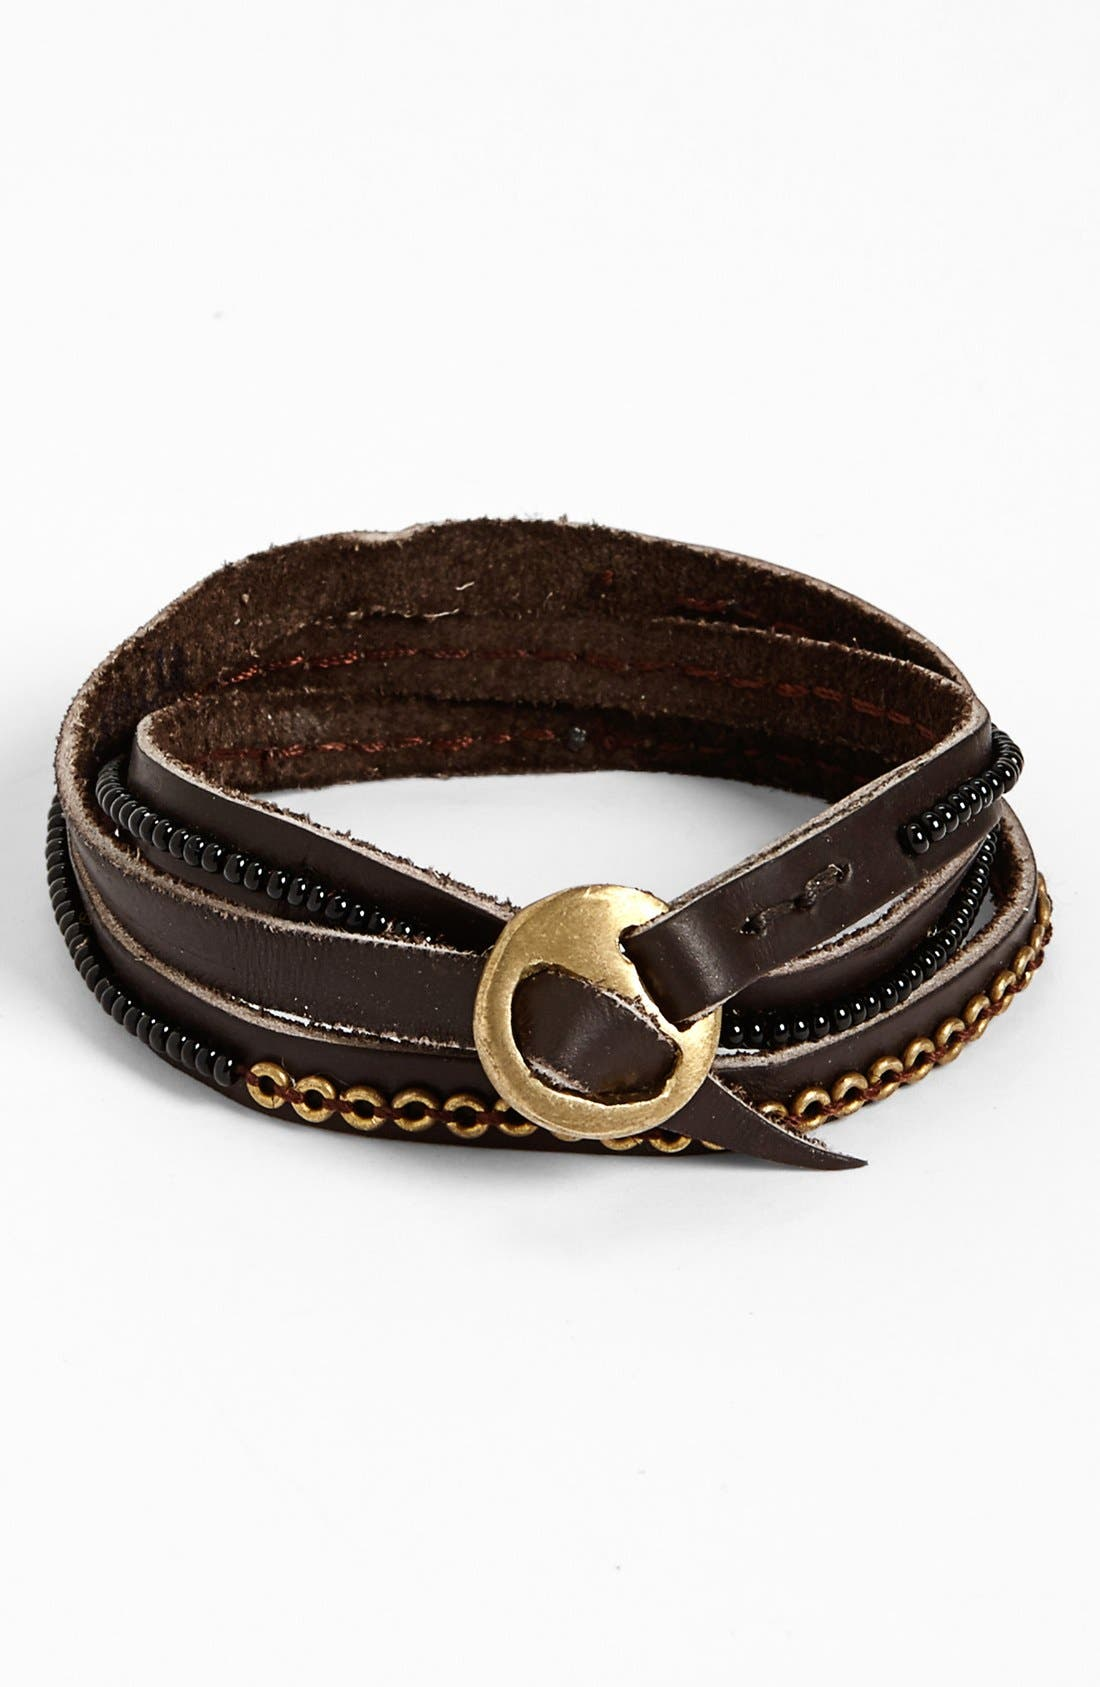 Alternate Image 1 Selected - Me to We Artisans 'Tatu' Beaded Leather Wrap Bracelet (Juniors)